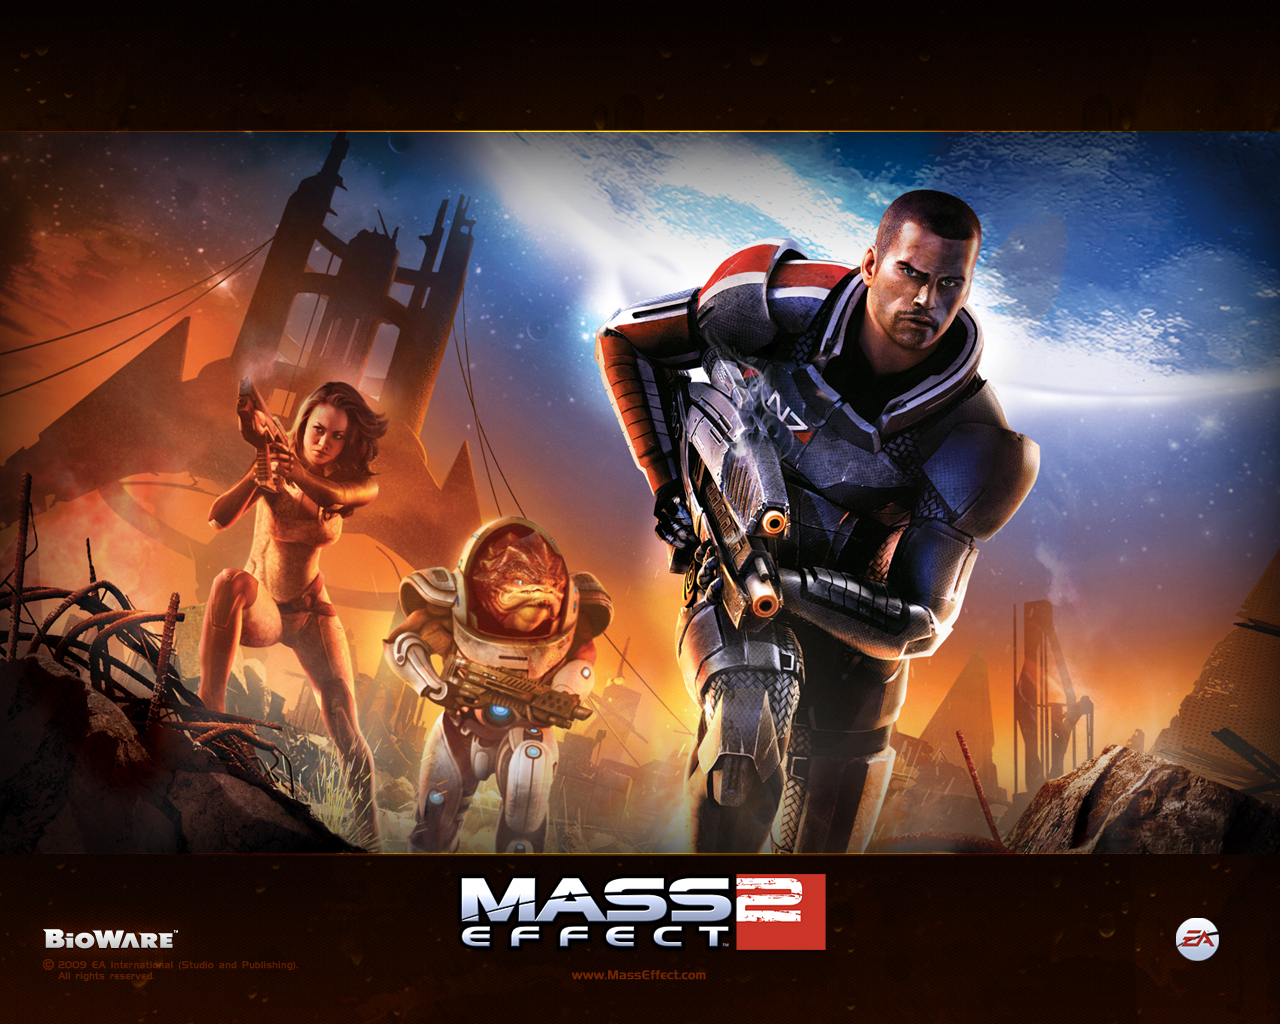 Tai Game Gata City http://rucro.vn/th/download-game-mass-effect-full-tai-game-mass-effect-bao-ve-thien-ha.5088/